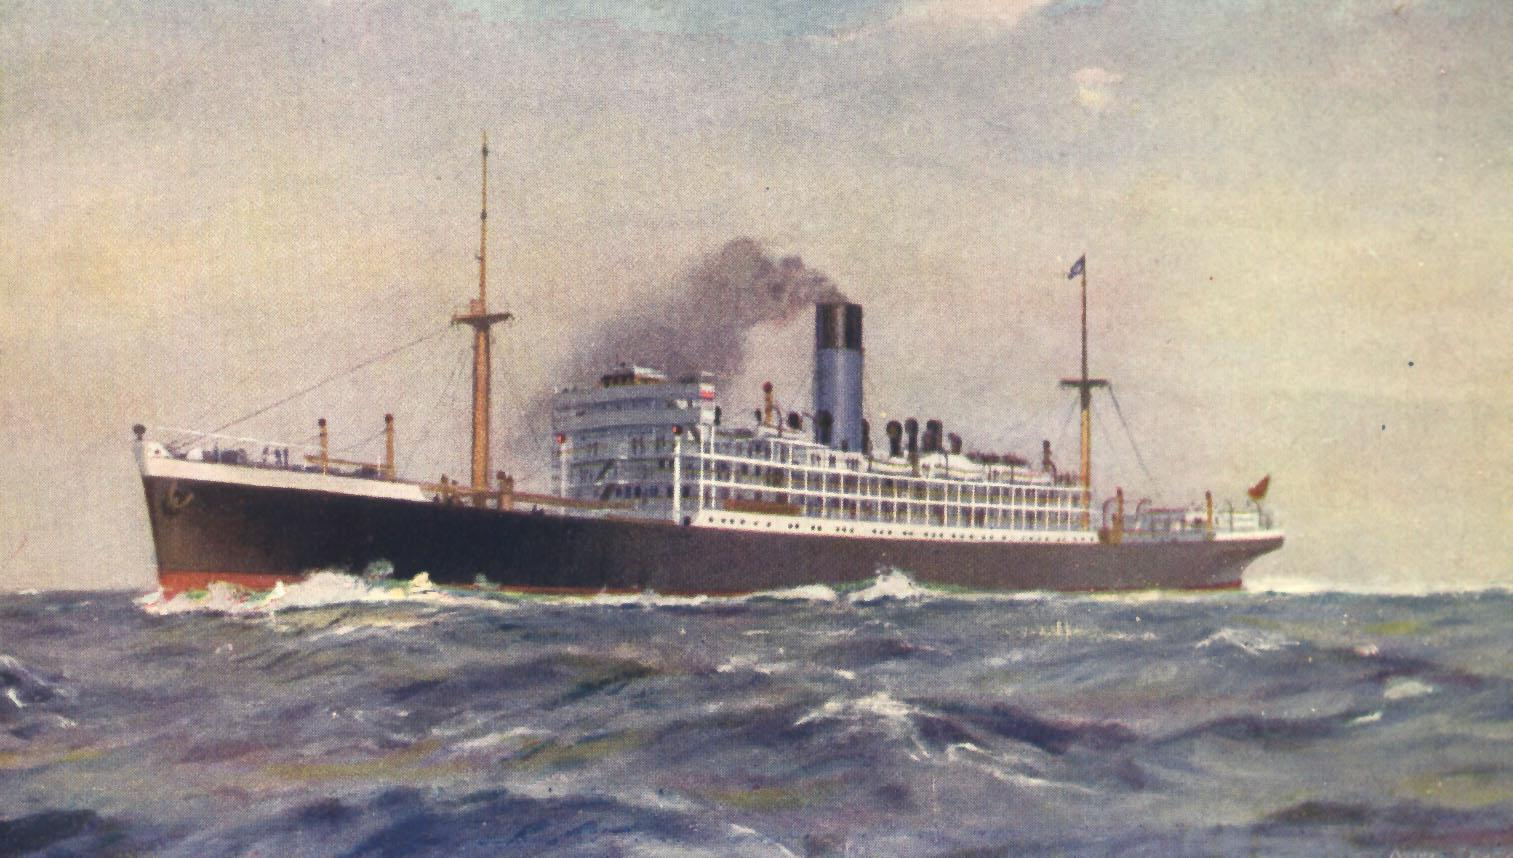 "Passenger Vessel ""Nestor"", built in 1912 by Workman & Clark & Co - Belfast.  Owned by Blue Funnel Line and worked route between UK - Australia - UK.  She took her first voyage in 1913 and in 1915 was commandeered as a troopship.  In 1920 she resumed servi"